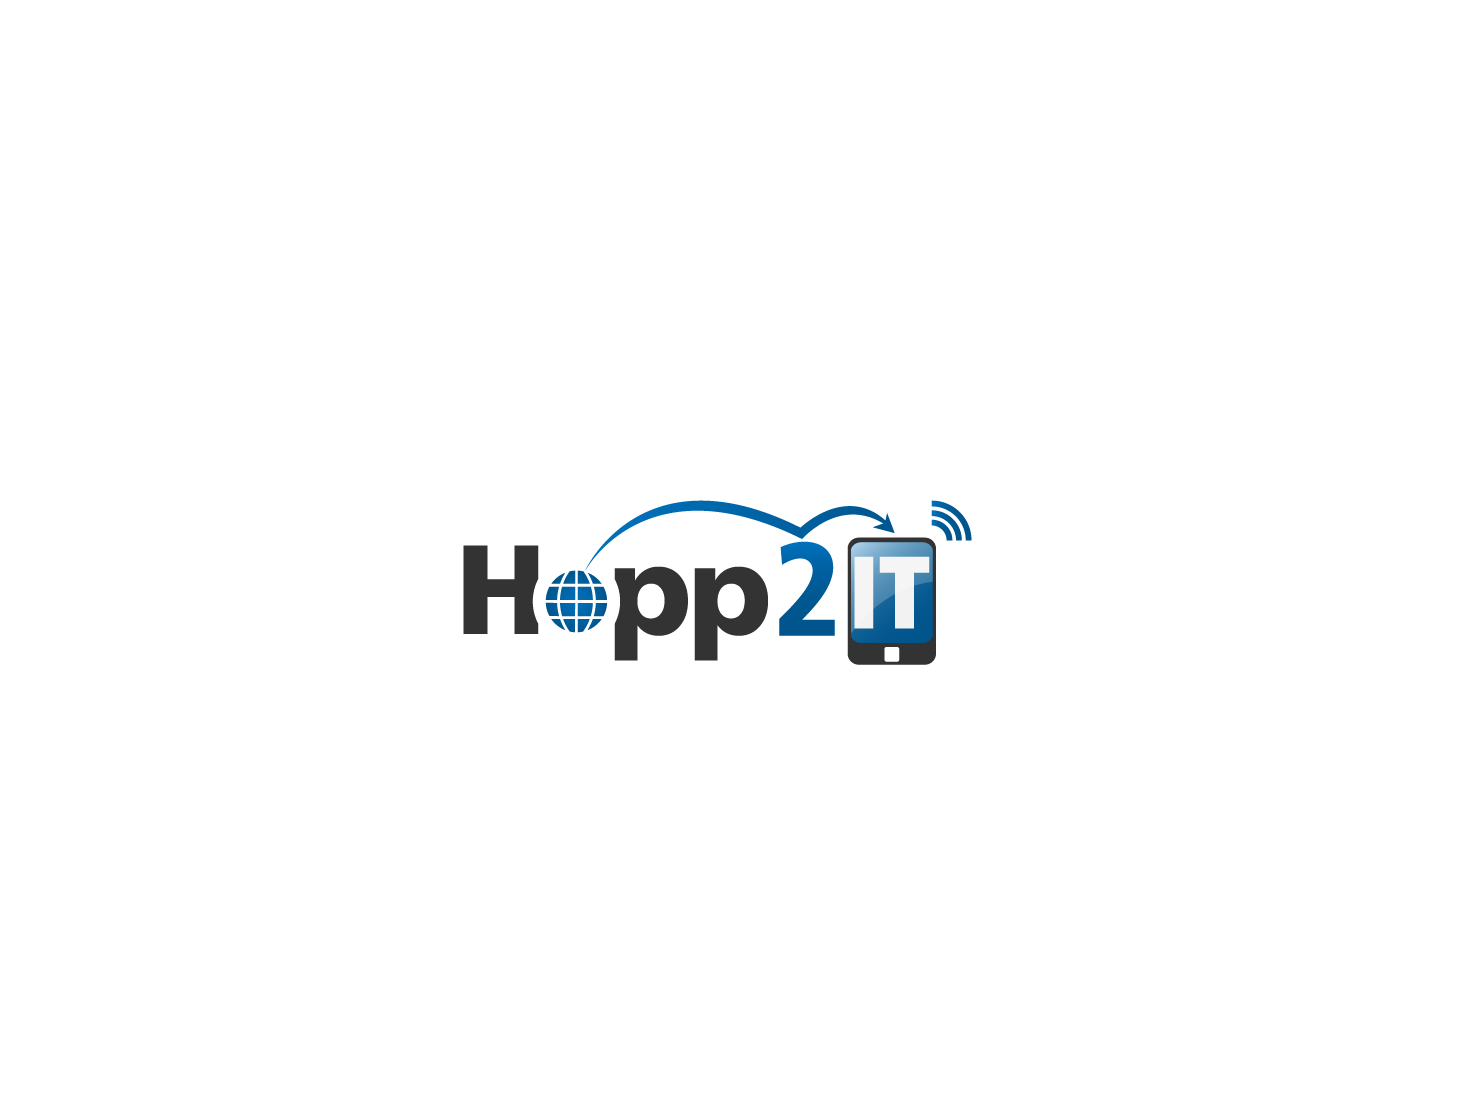 New logo wanted for Hopp 2 It